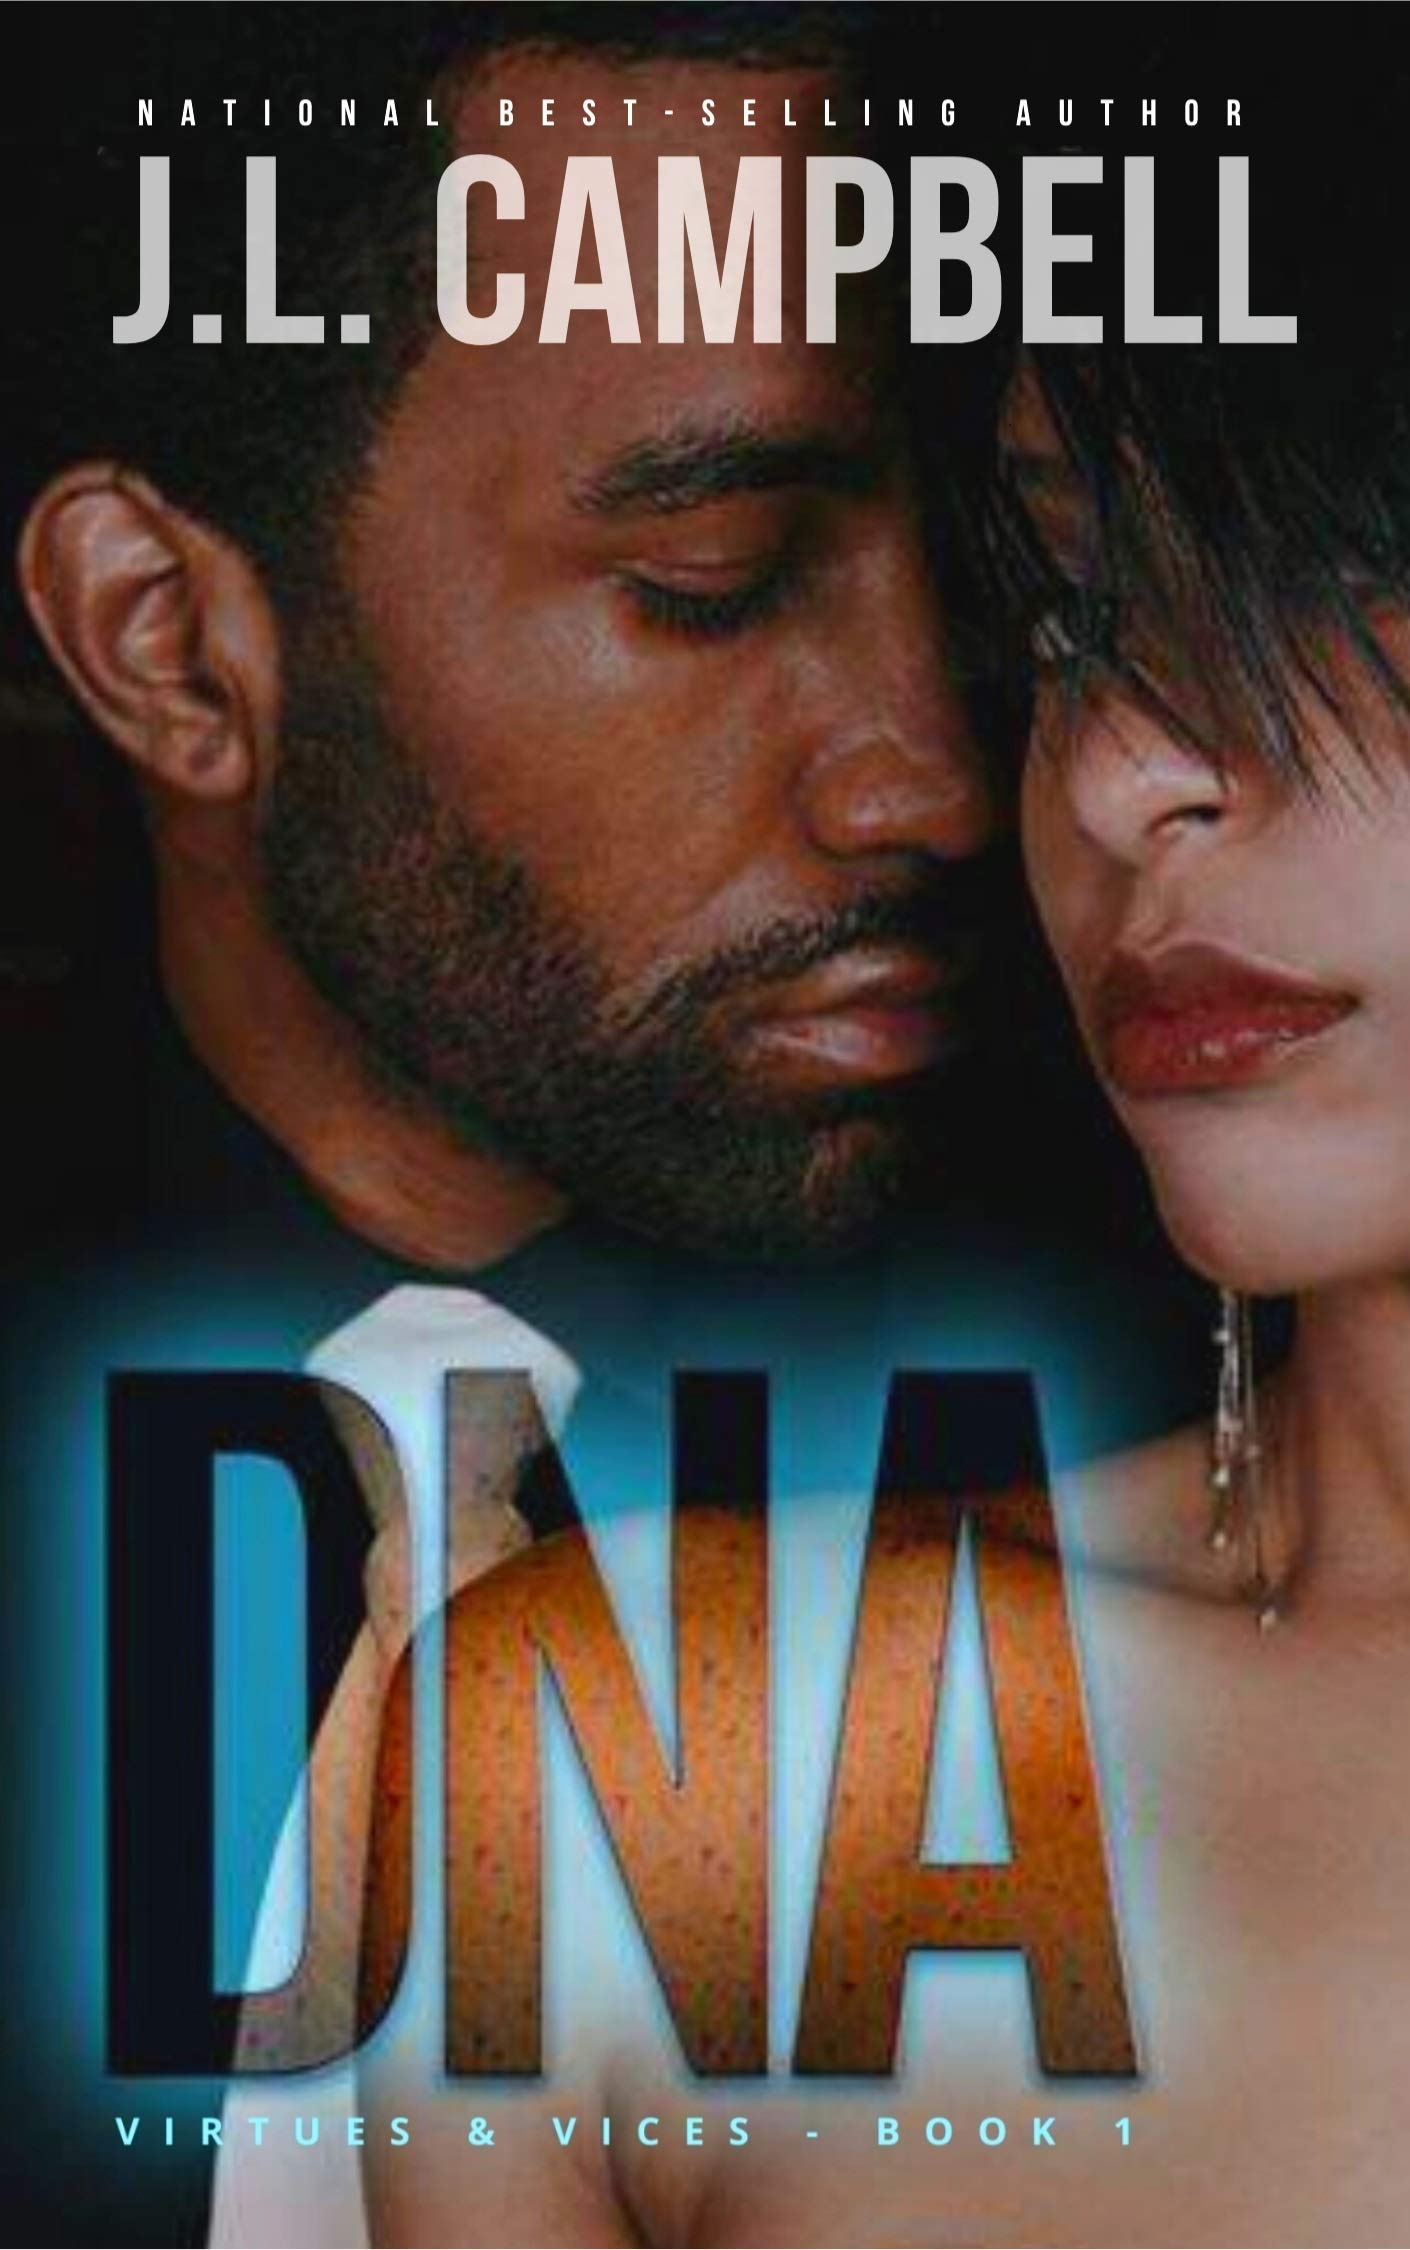 DNA (Virtues & Vices Book 1)